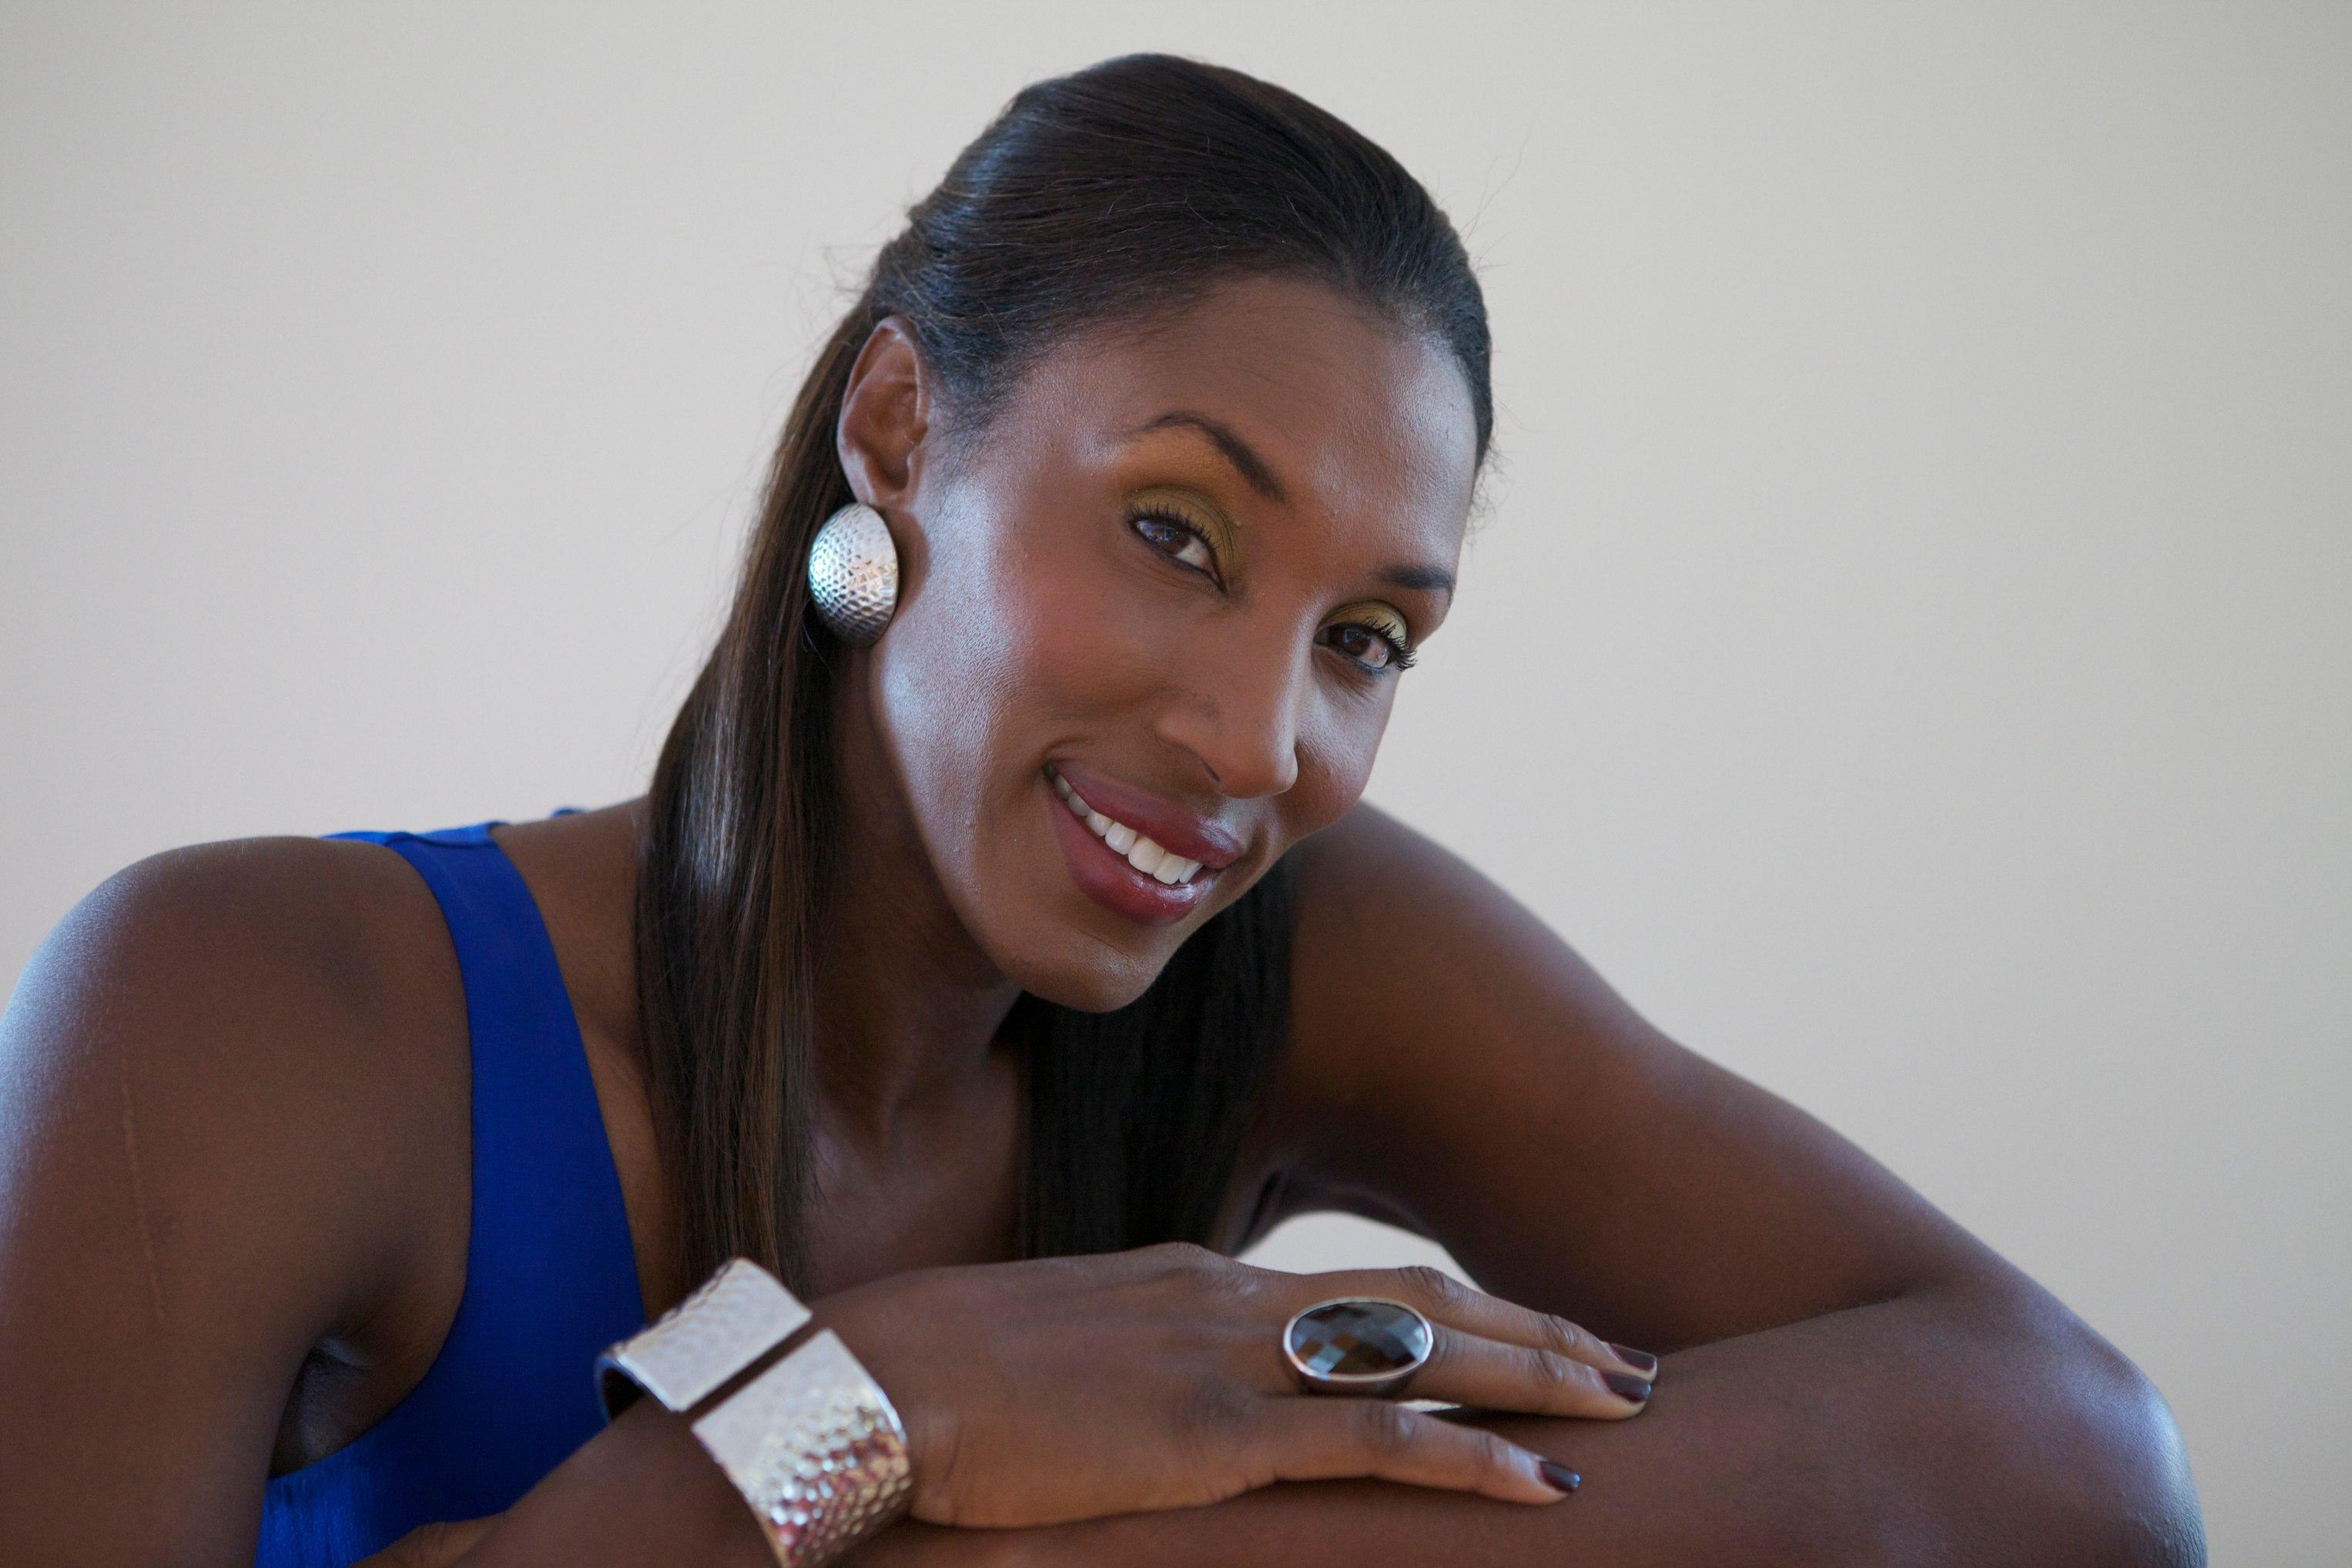 Womens basketball legend Lisa Leslie.